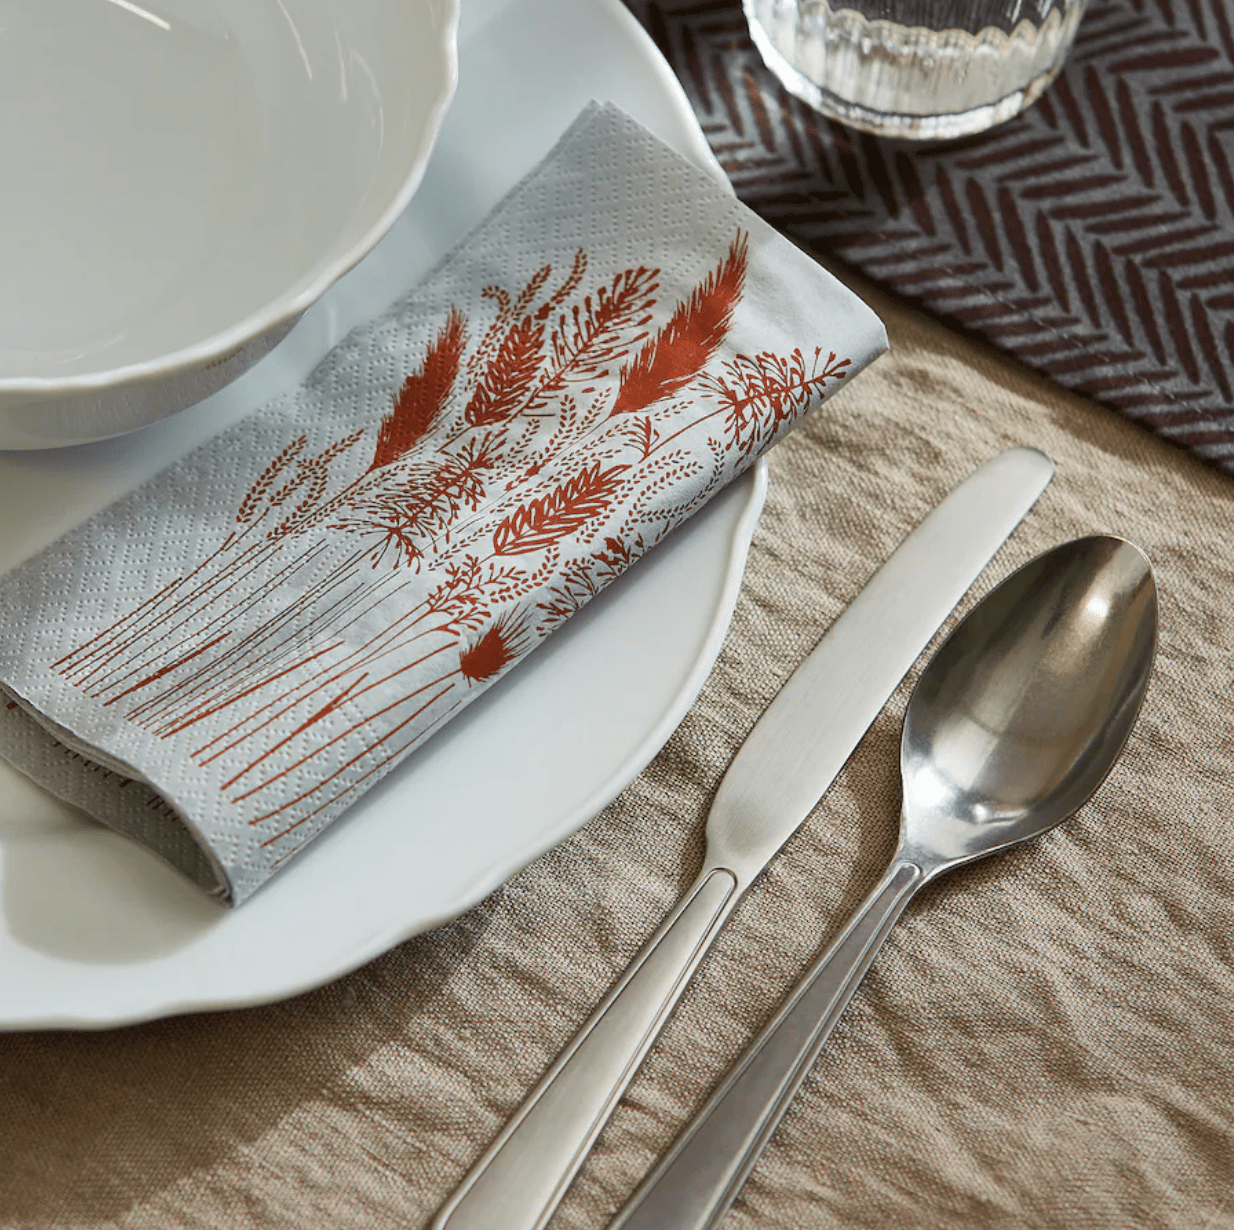 A grey and red paper napkin on a place setting